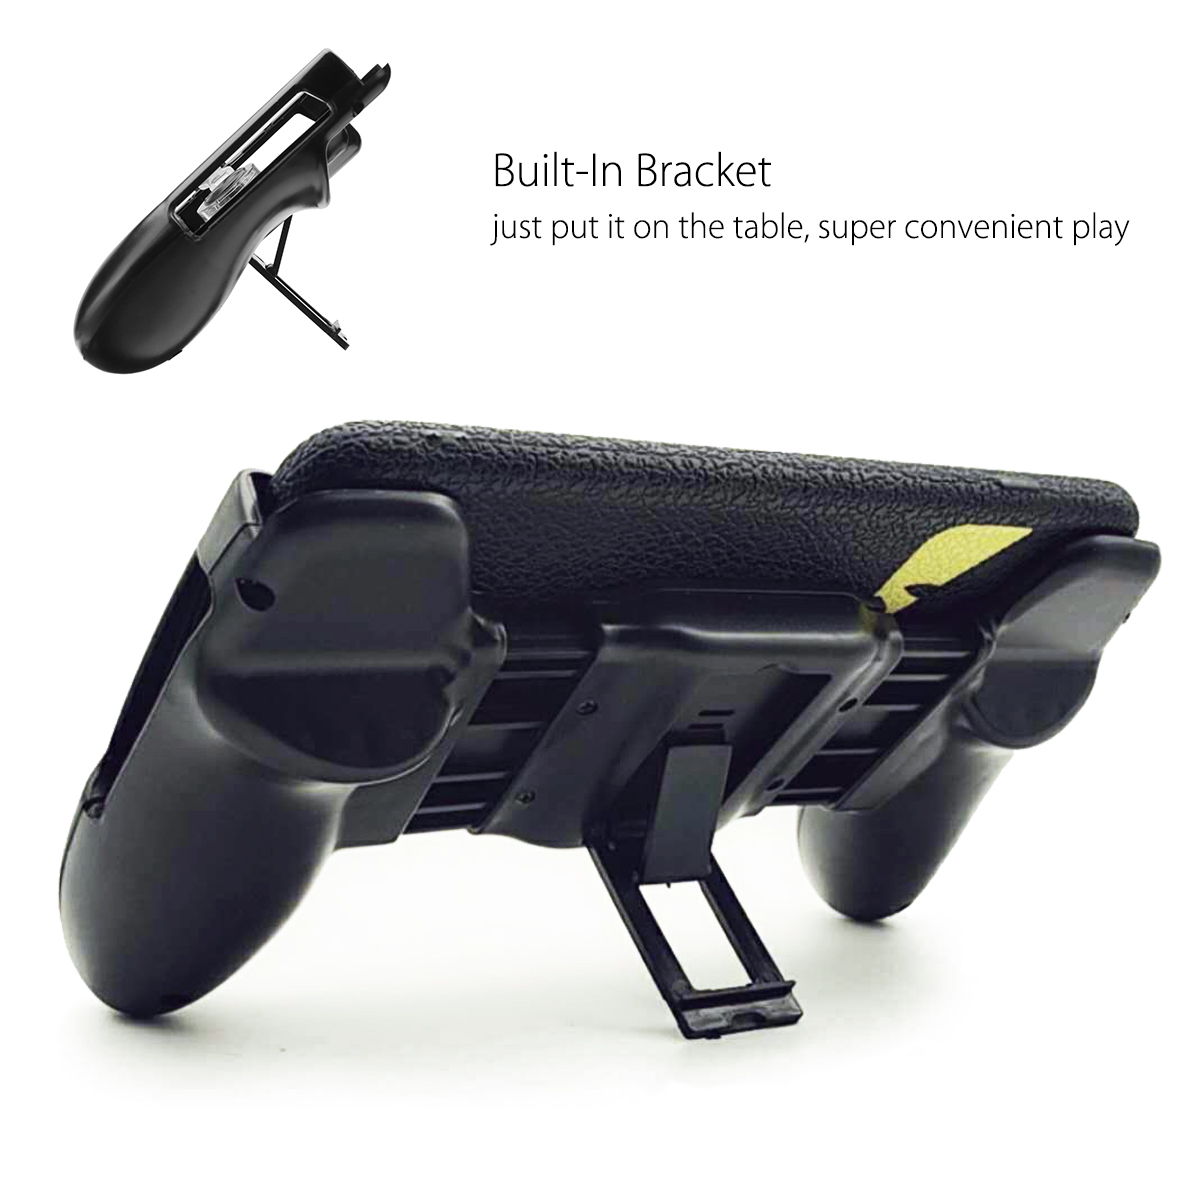 Game Controller Shooter Mobile Gaming Aiming Fire Trigger Button Handle L1R1 for PUBG Mobile Game with Phone Holder